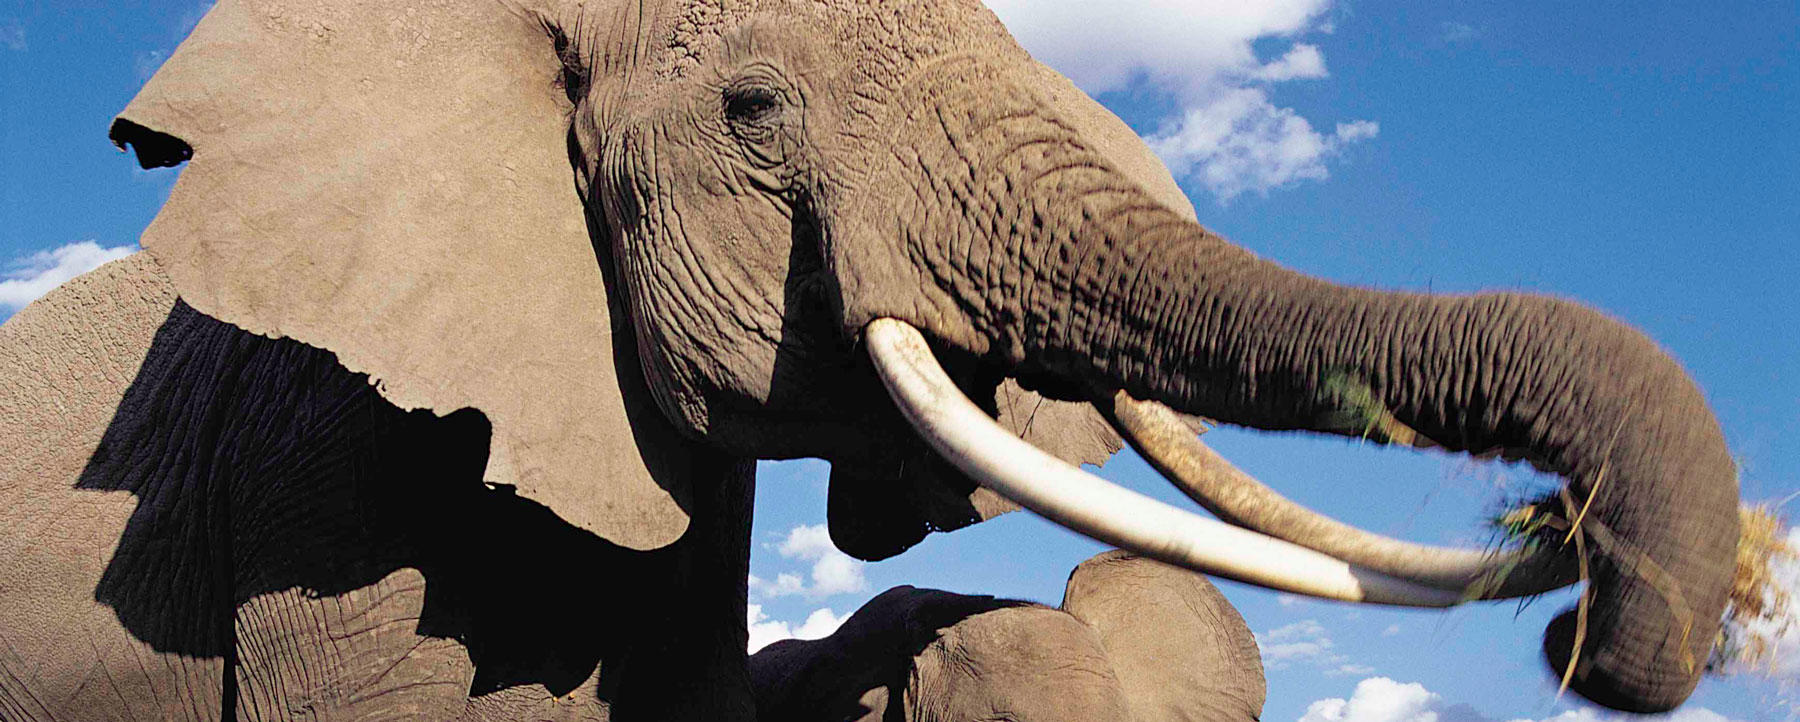 Elephant with long tusks